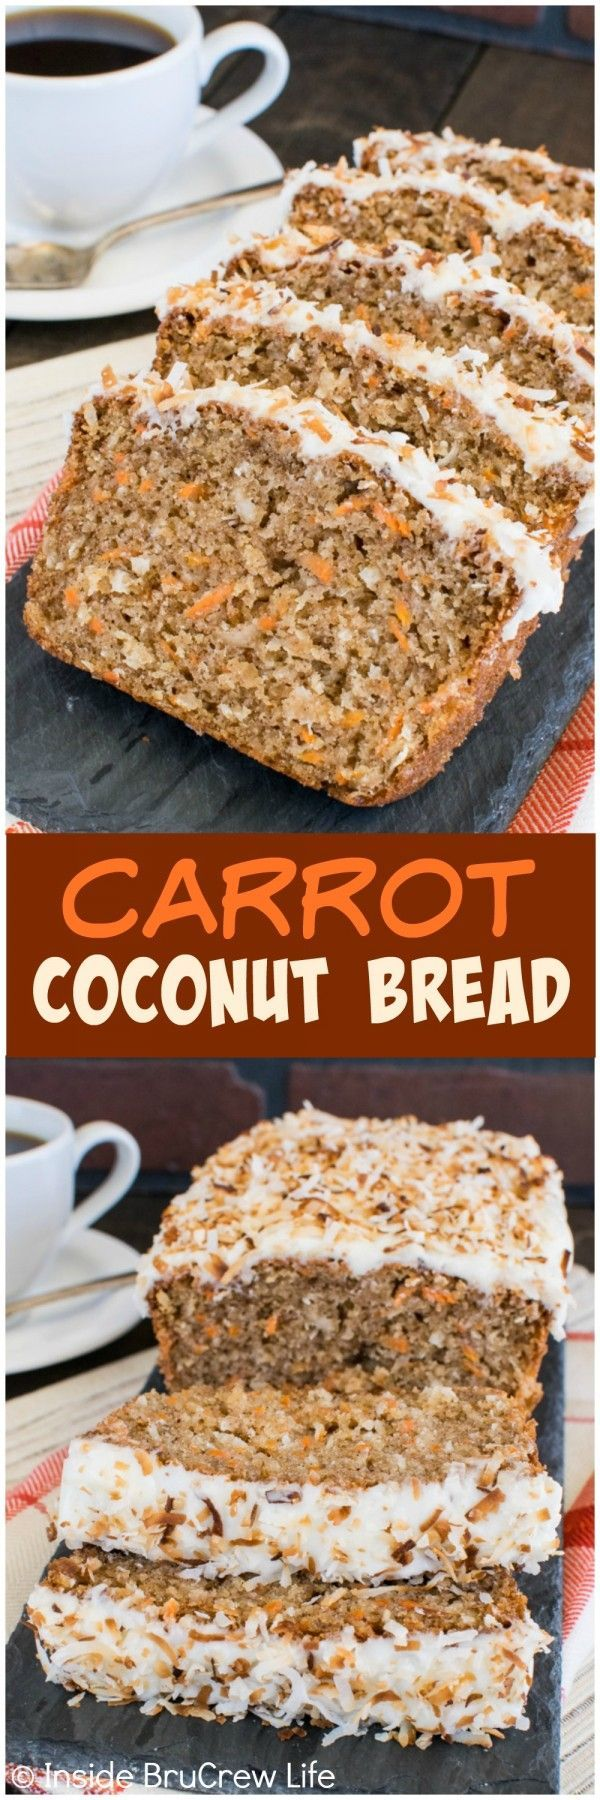 This Carrot Coconut Bread recipe is loaded with plenty of carrots ...